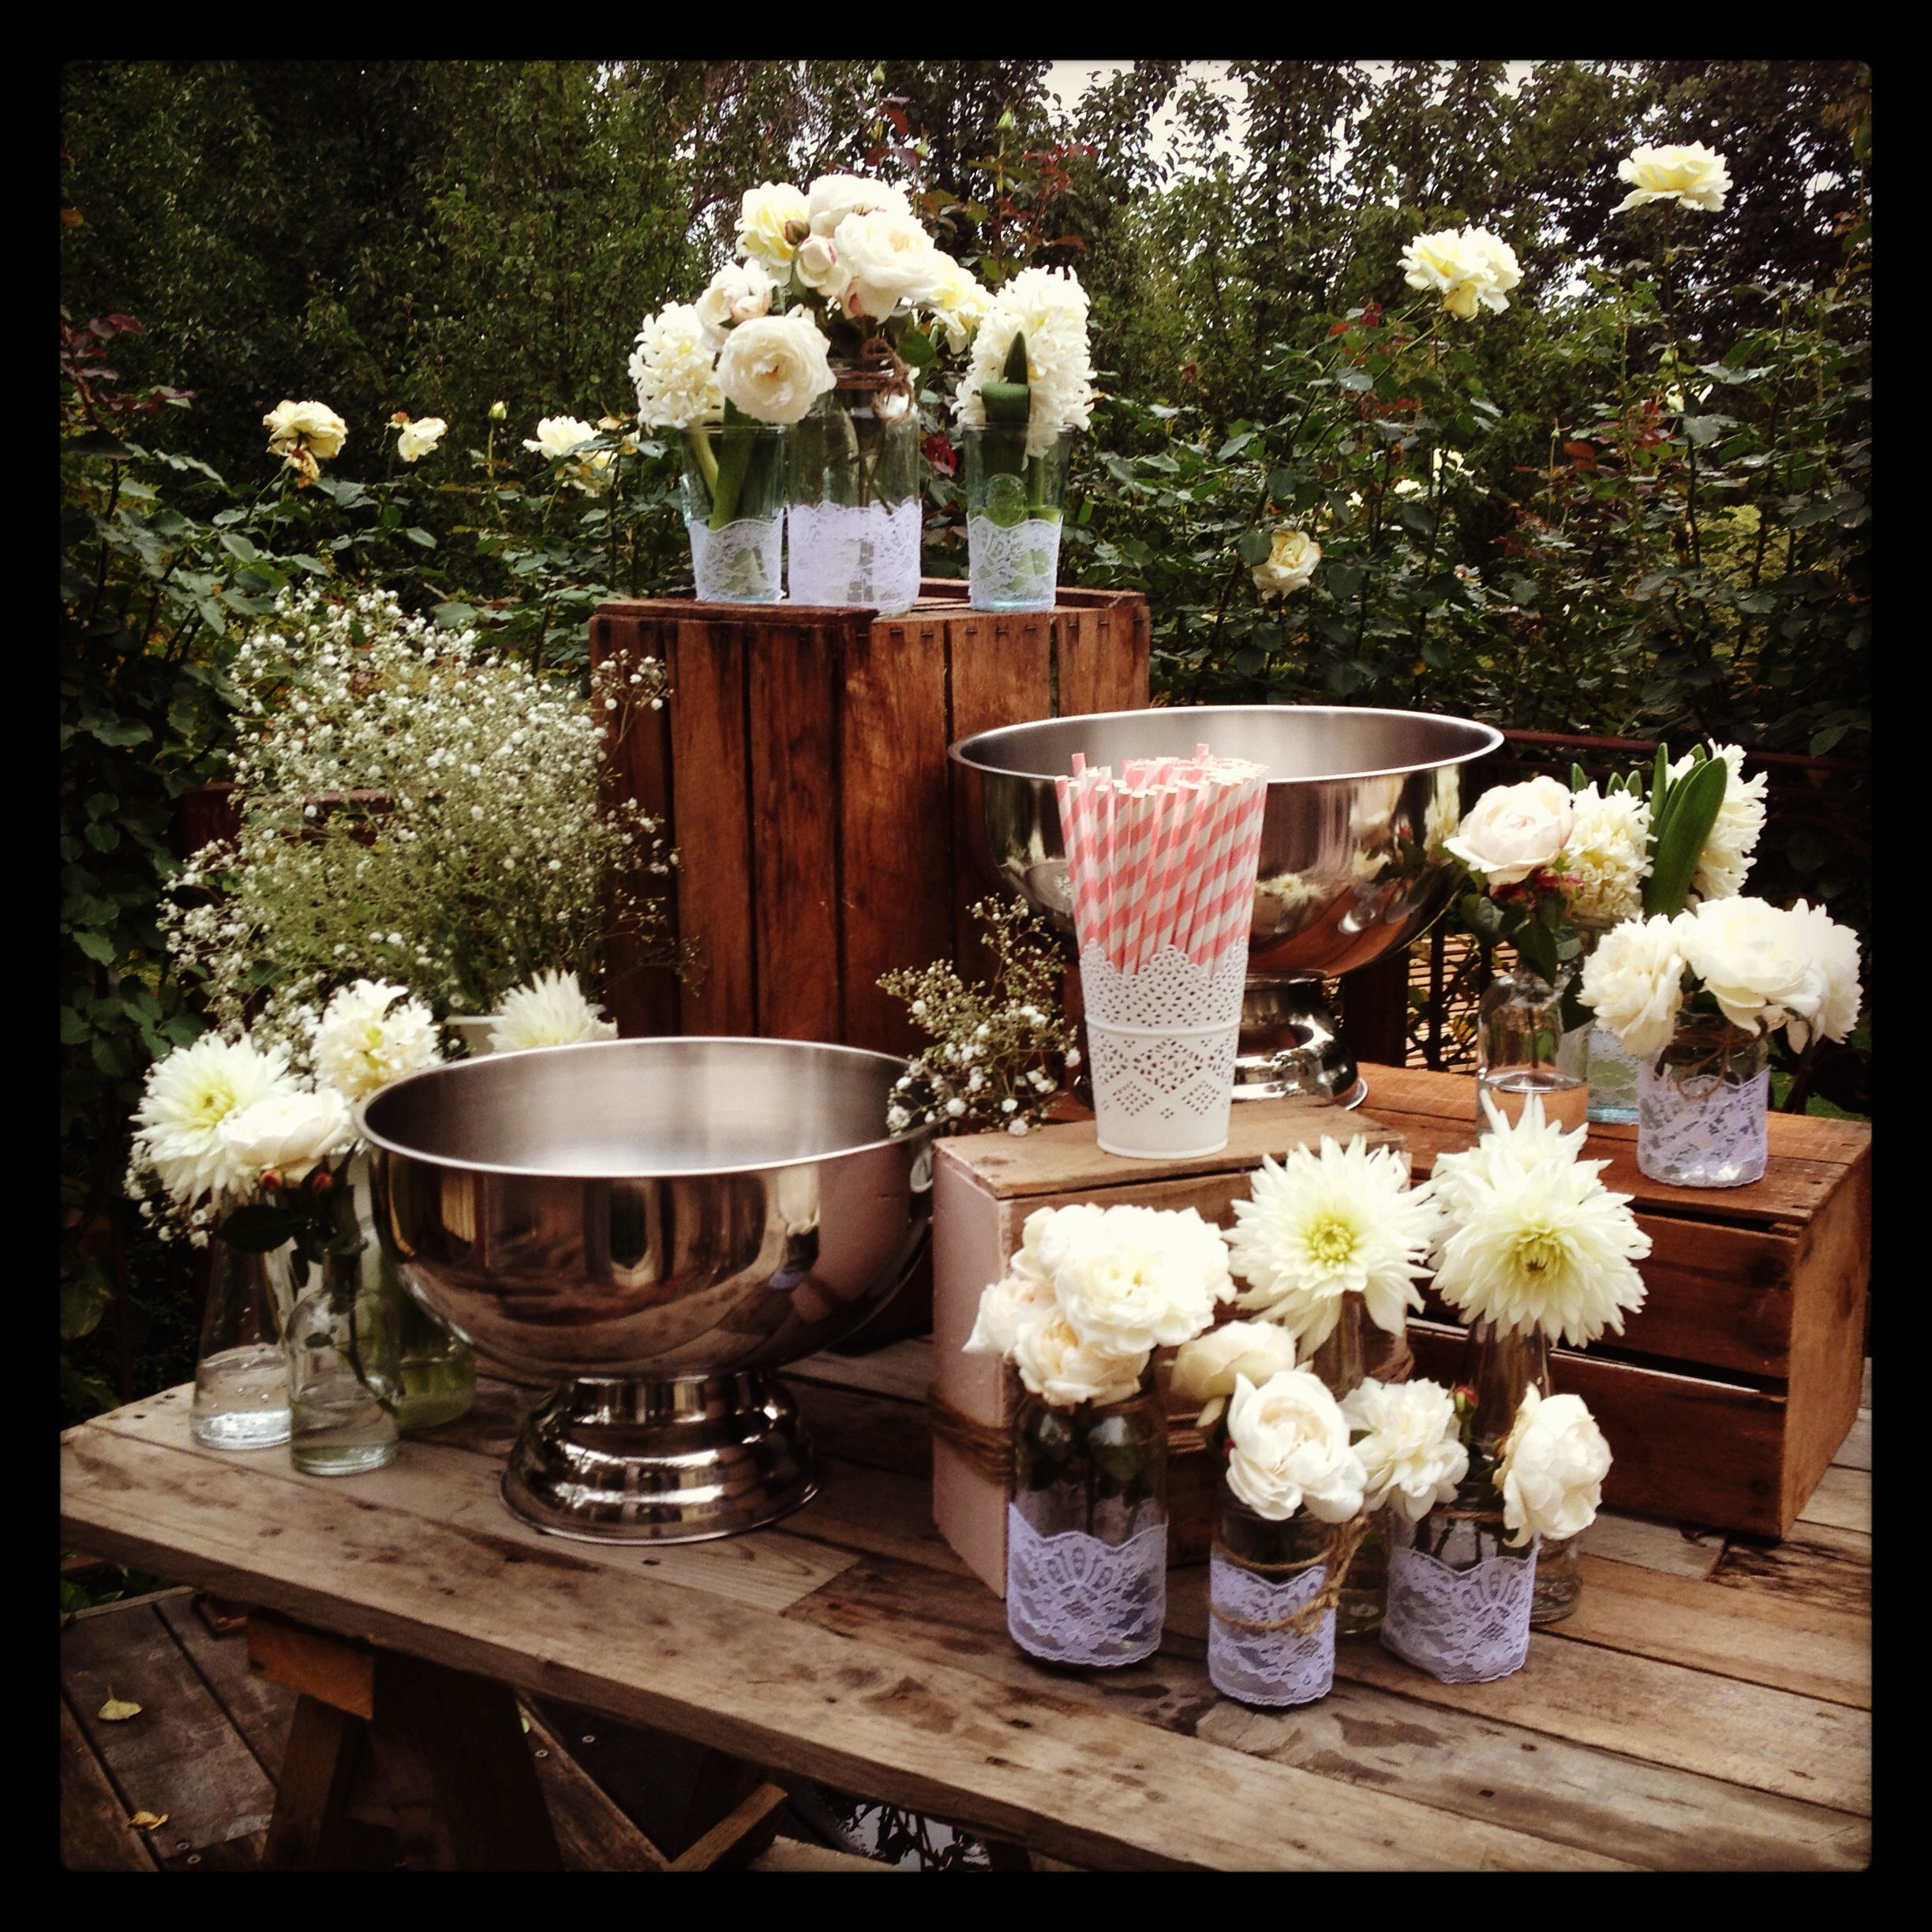 Drinks table for a romantic garden wedding.